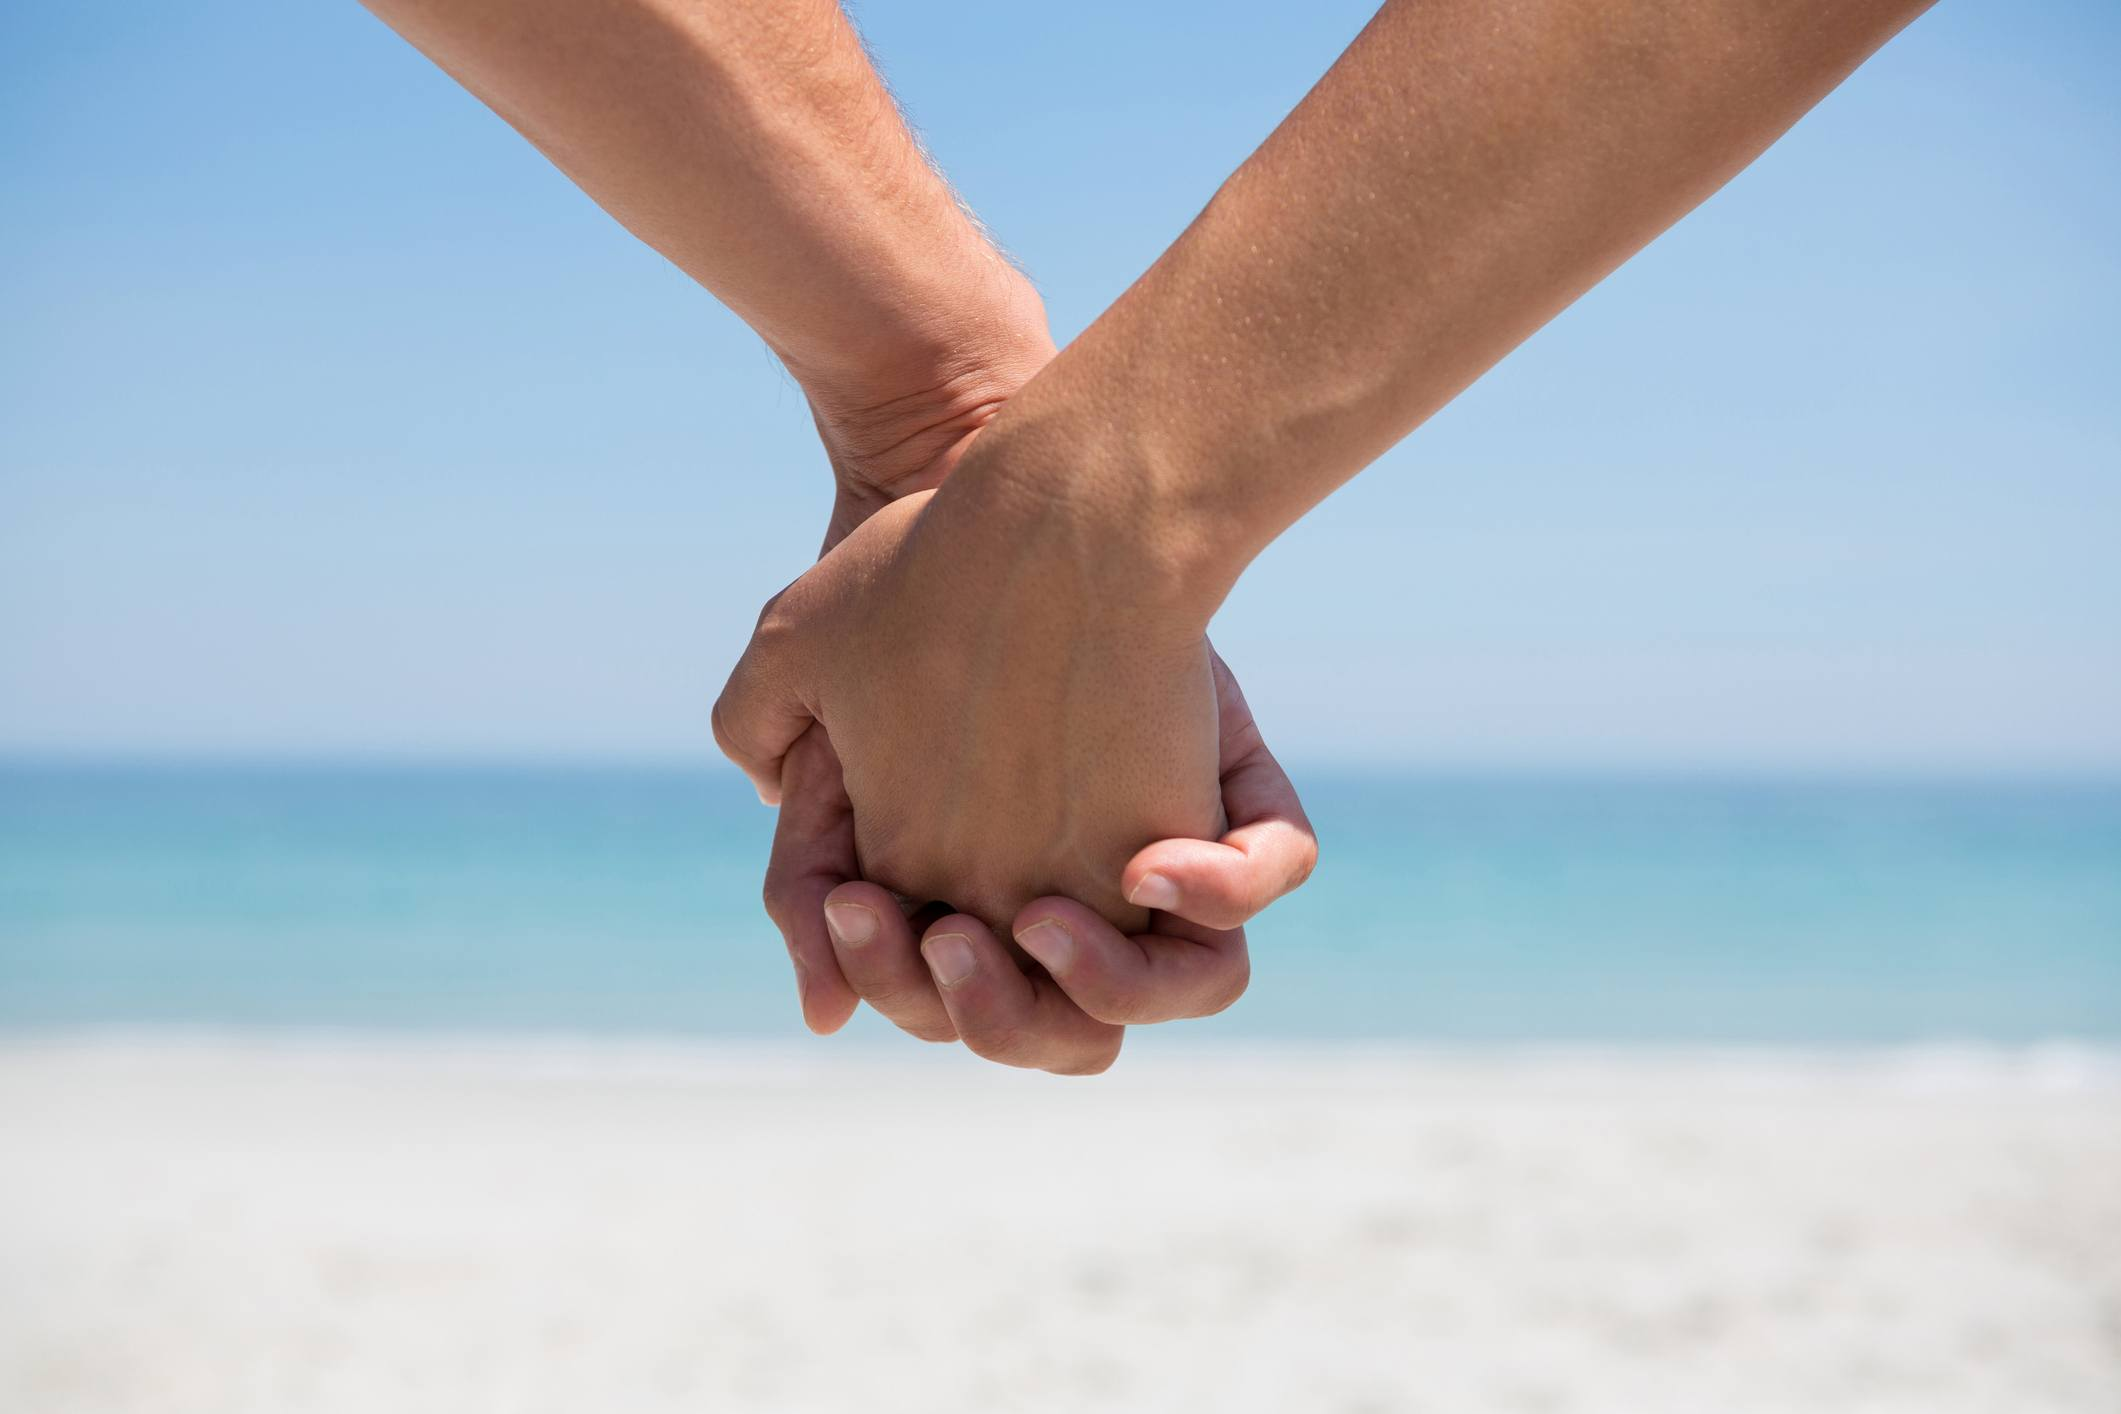 A couple holds hands at the beach.